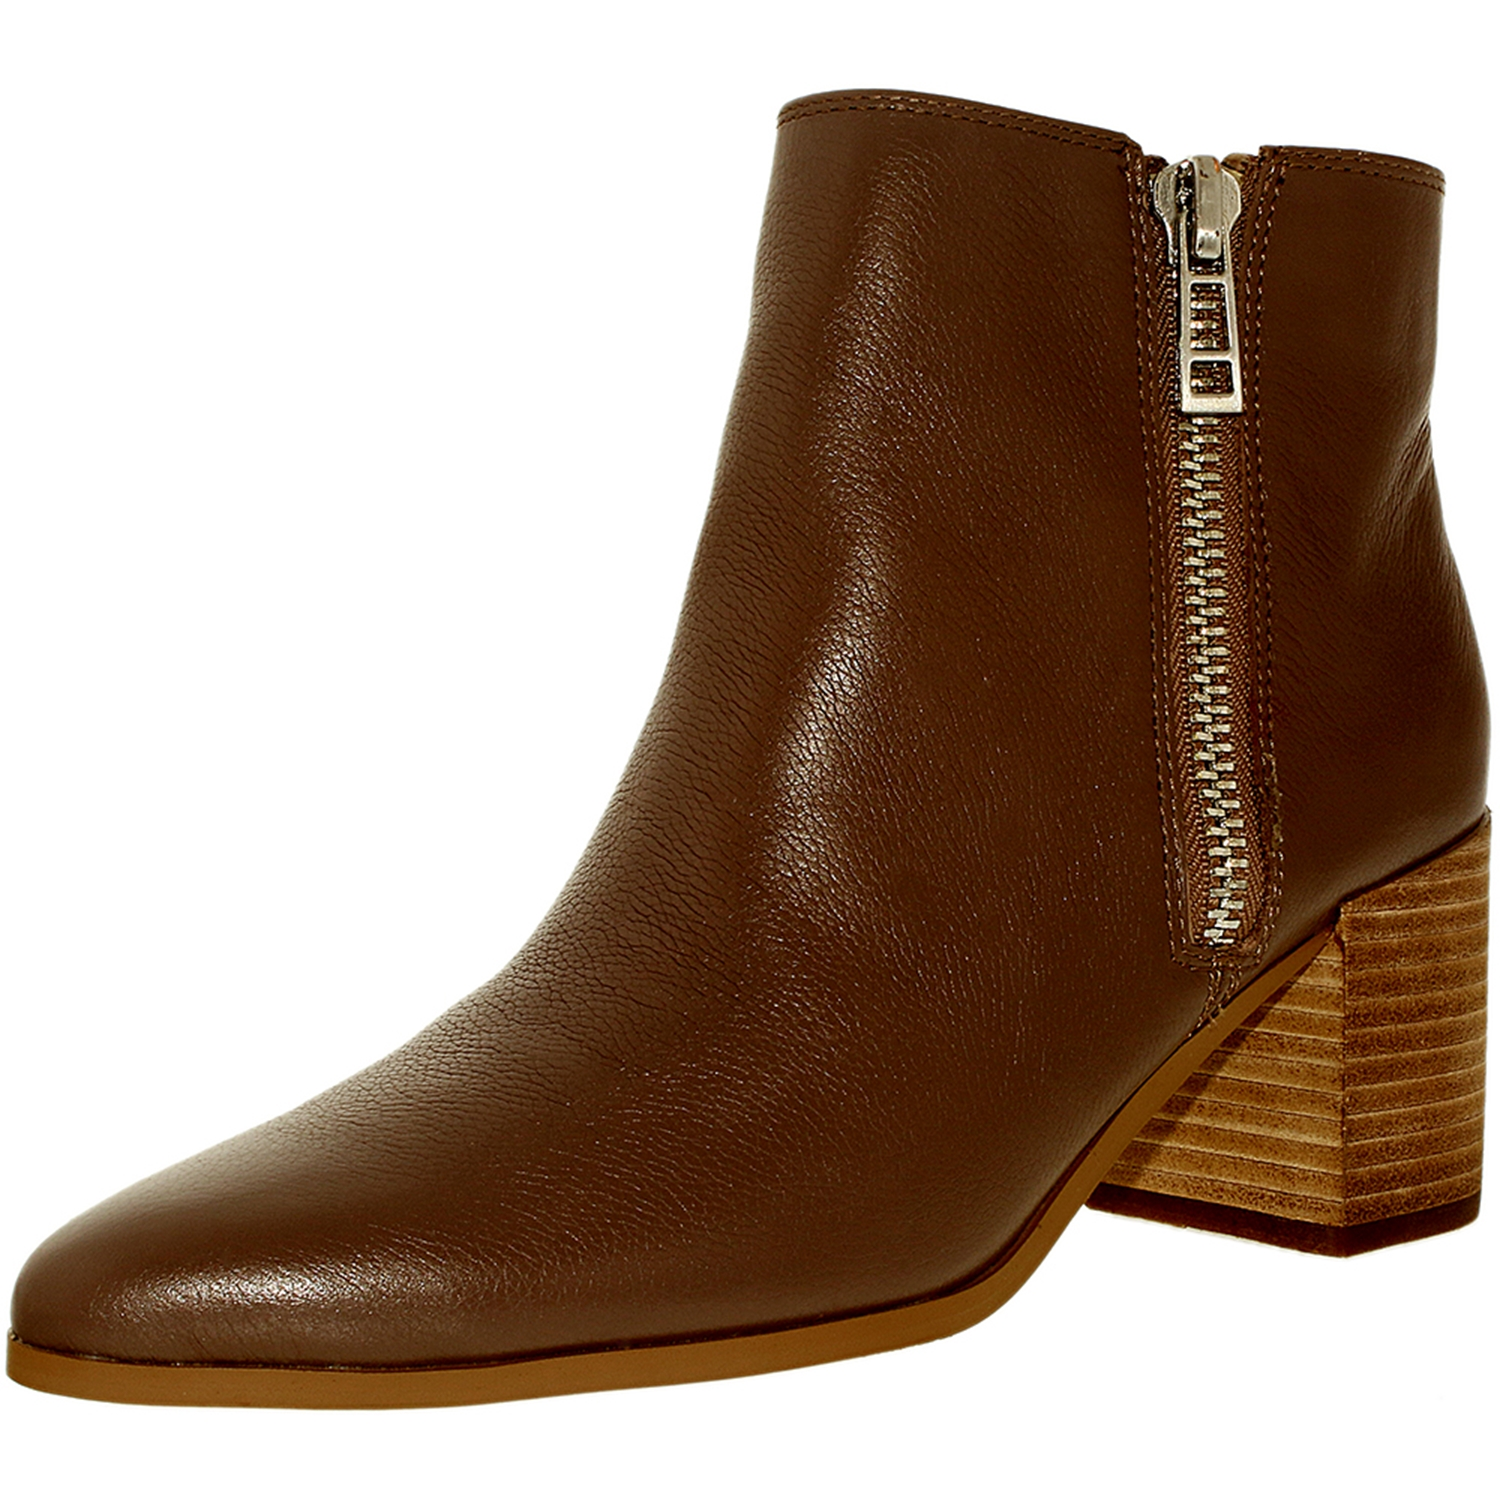 Charles By David Women's Uma Leather Dktaupe-Le Ankle-High Boot - 8.5M